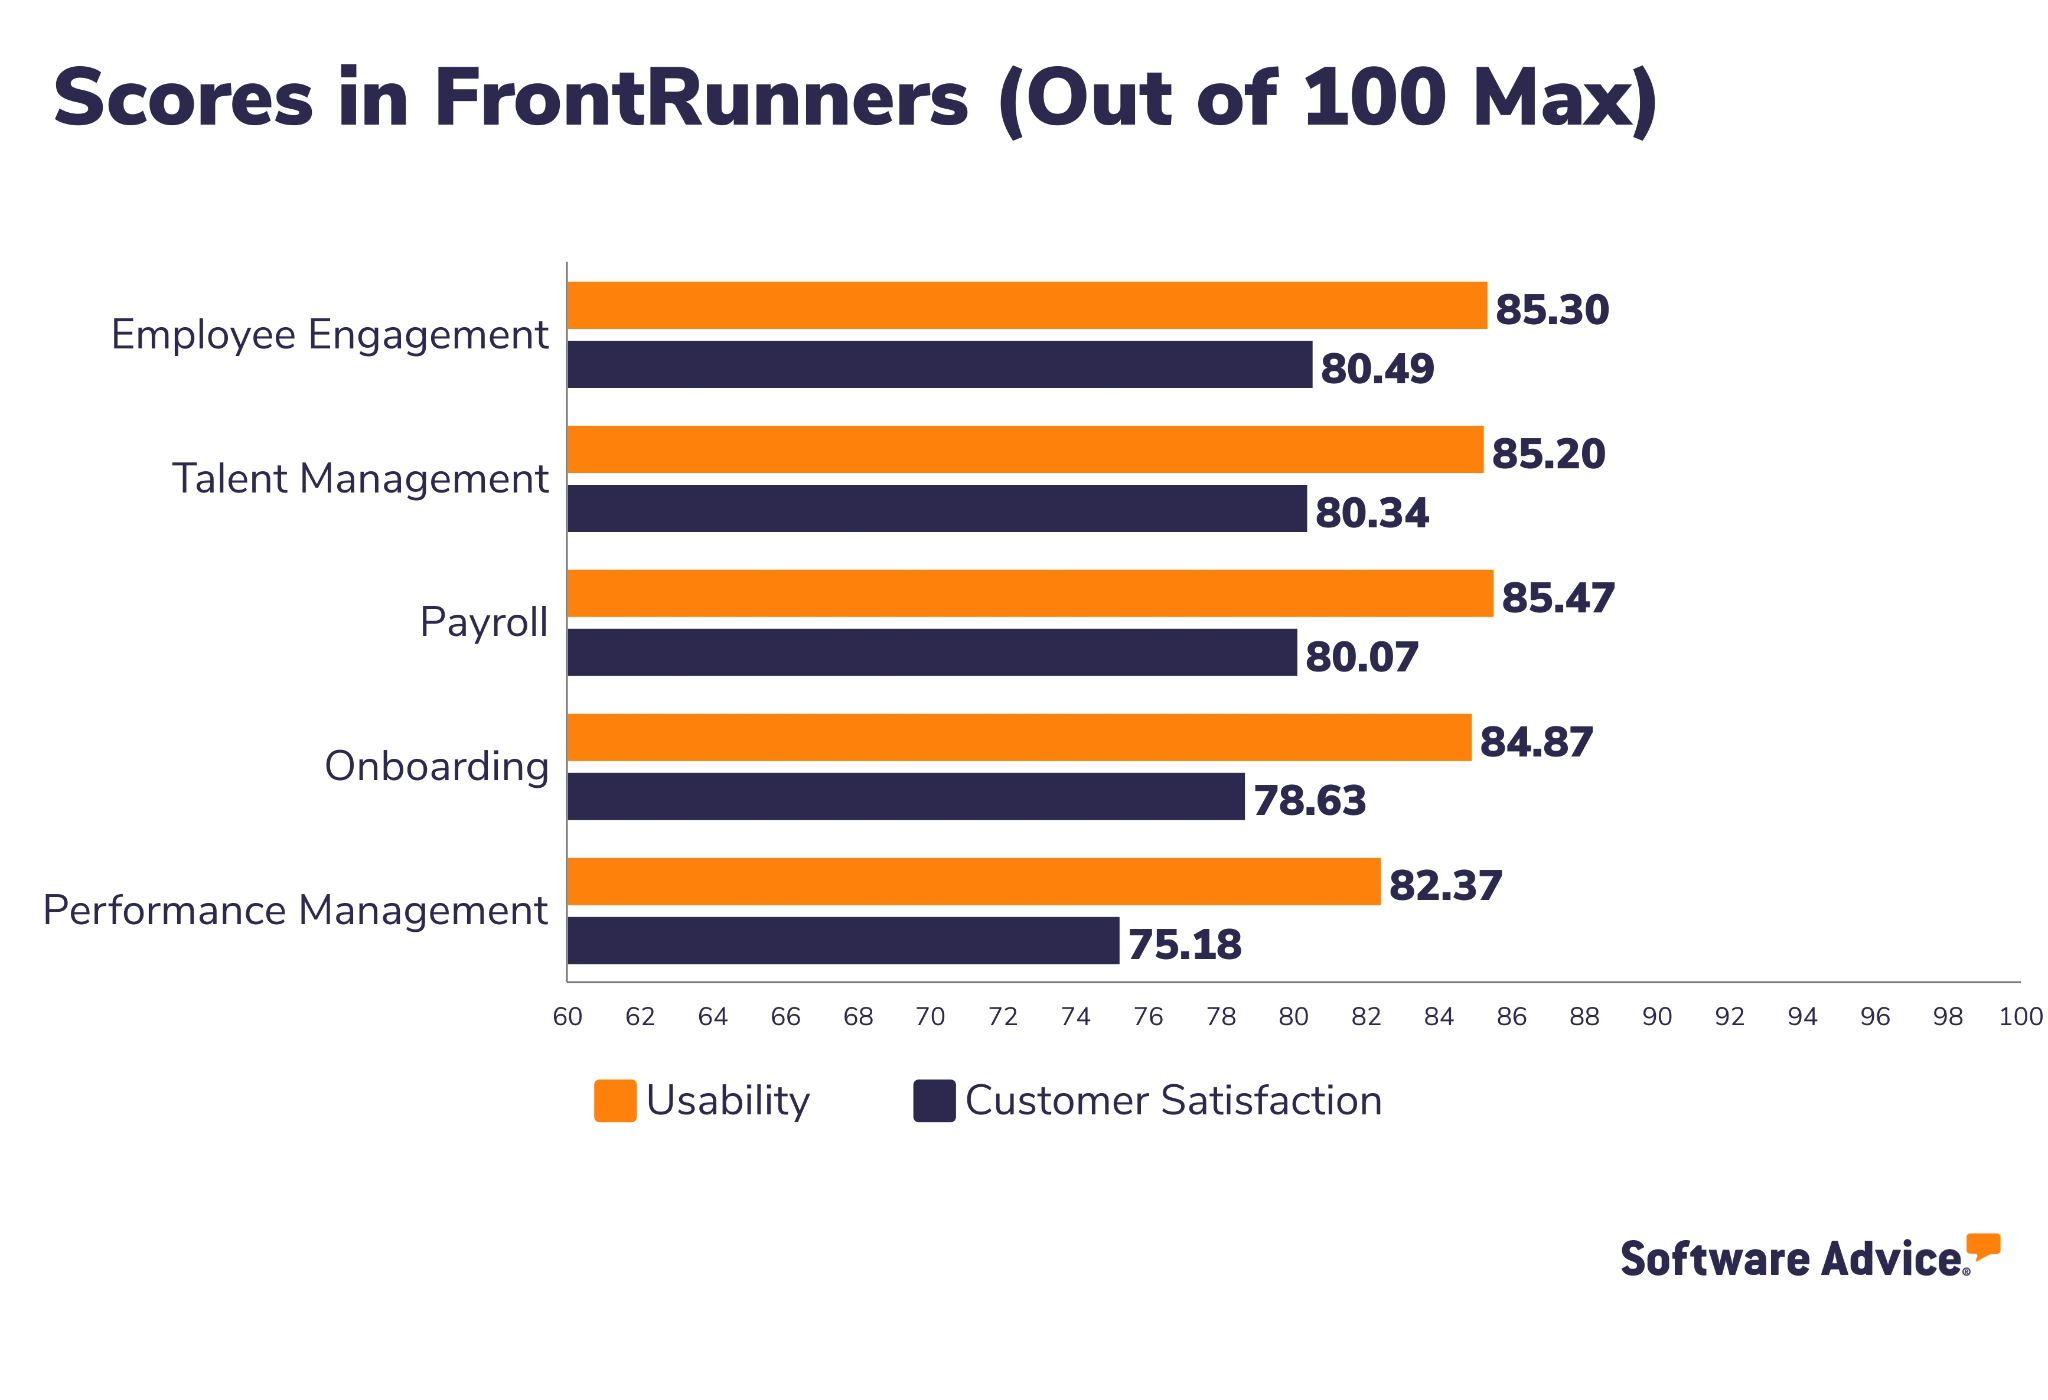 Namely Software Advice FrontRunners Snapshot